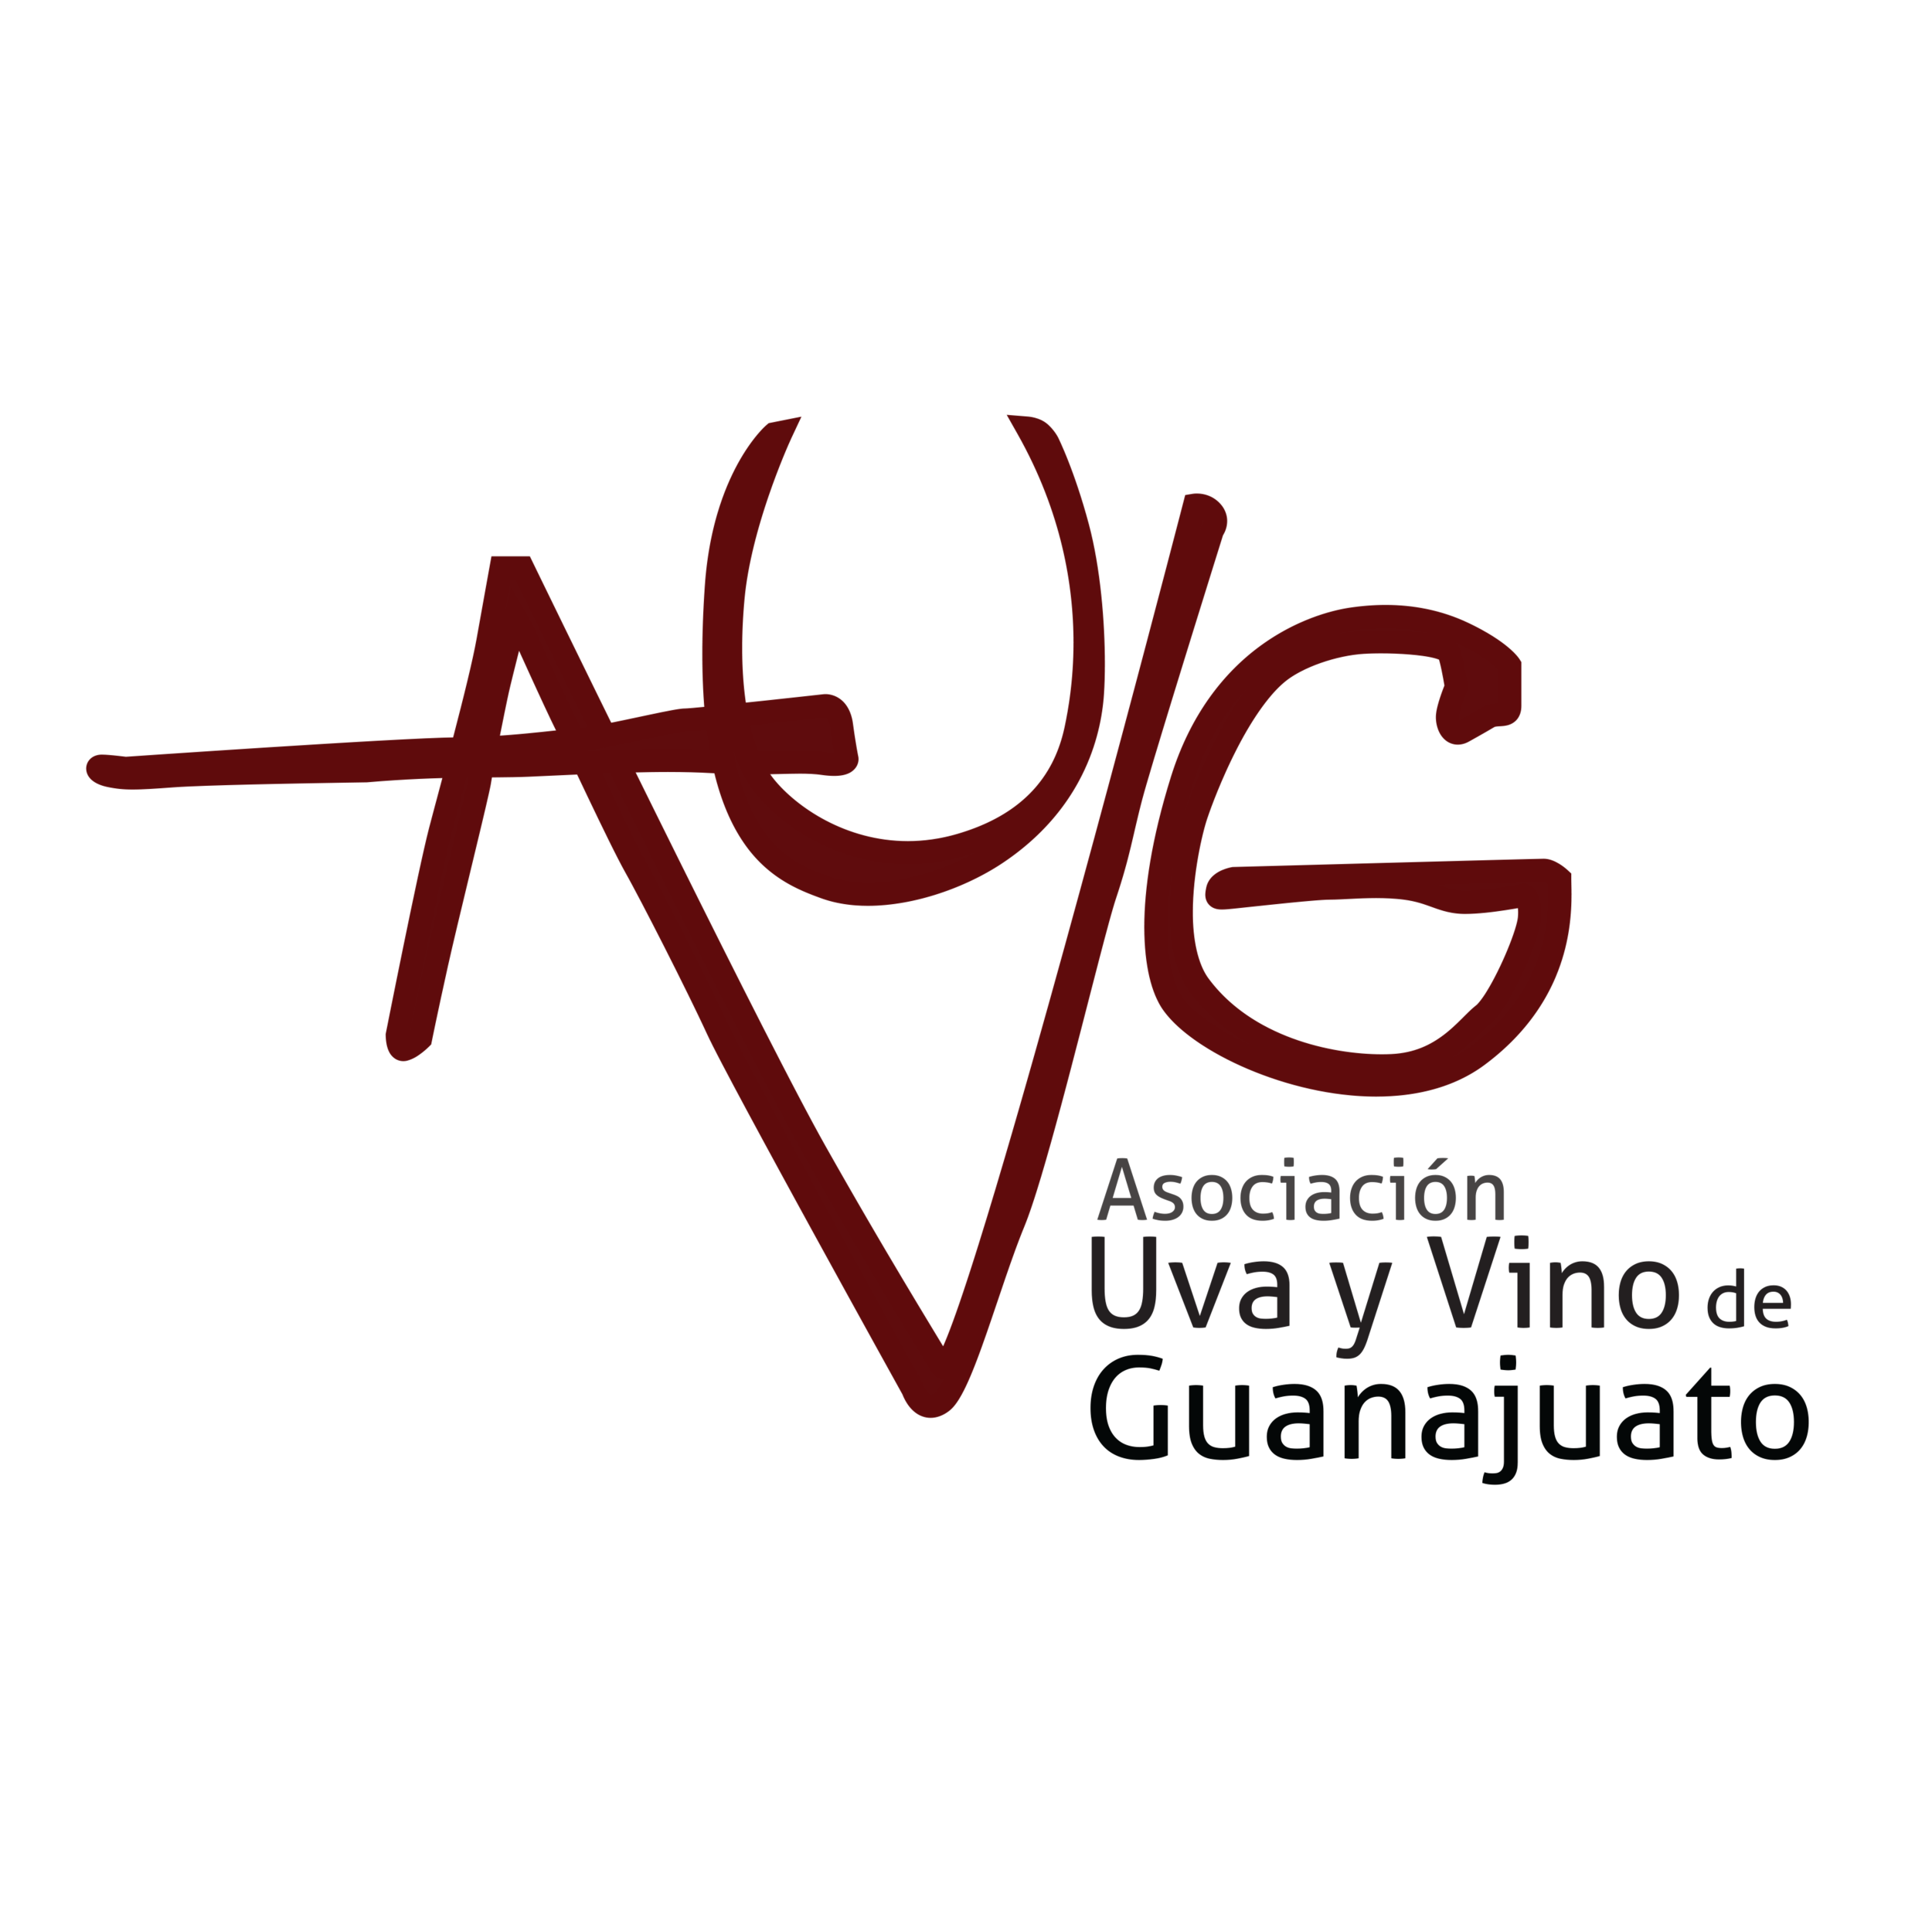 AUVG.png